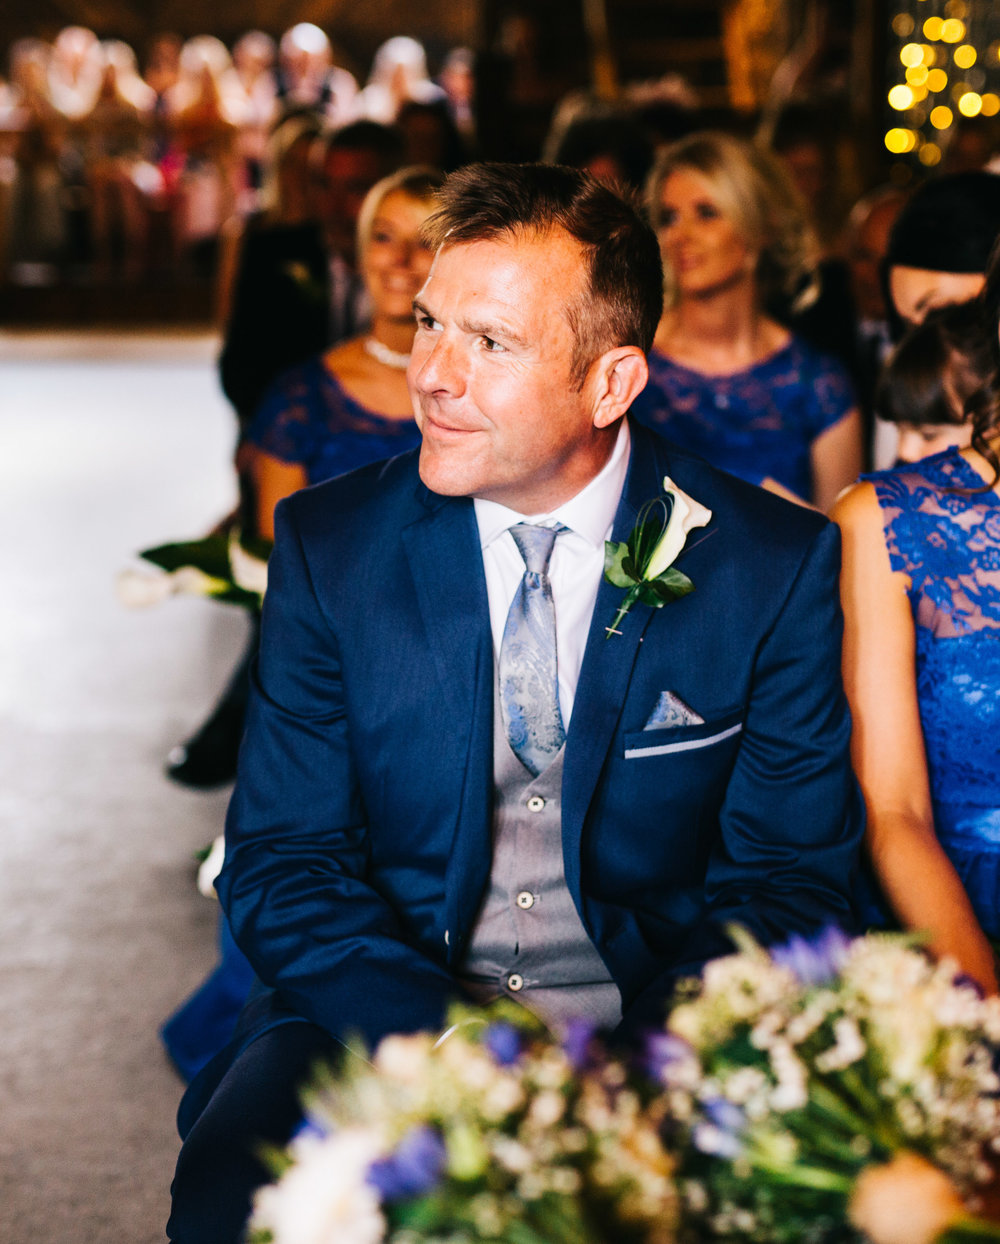 dad watches wedding ceremony with pride